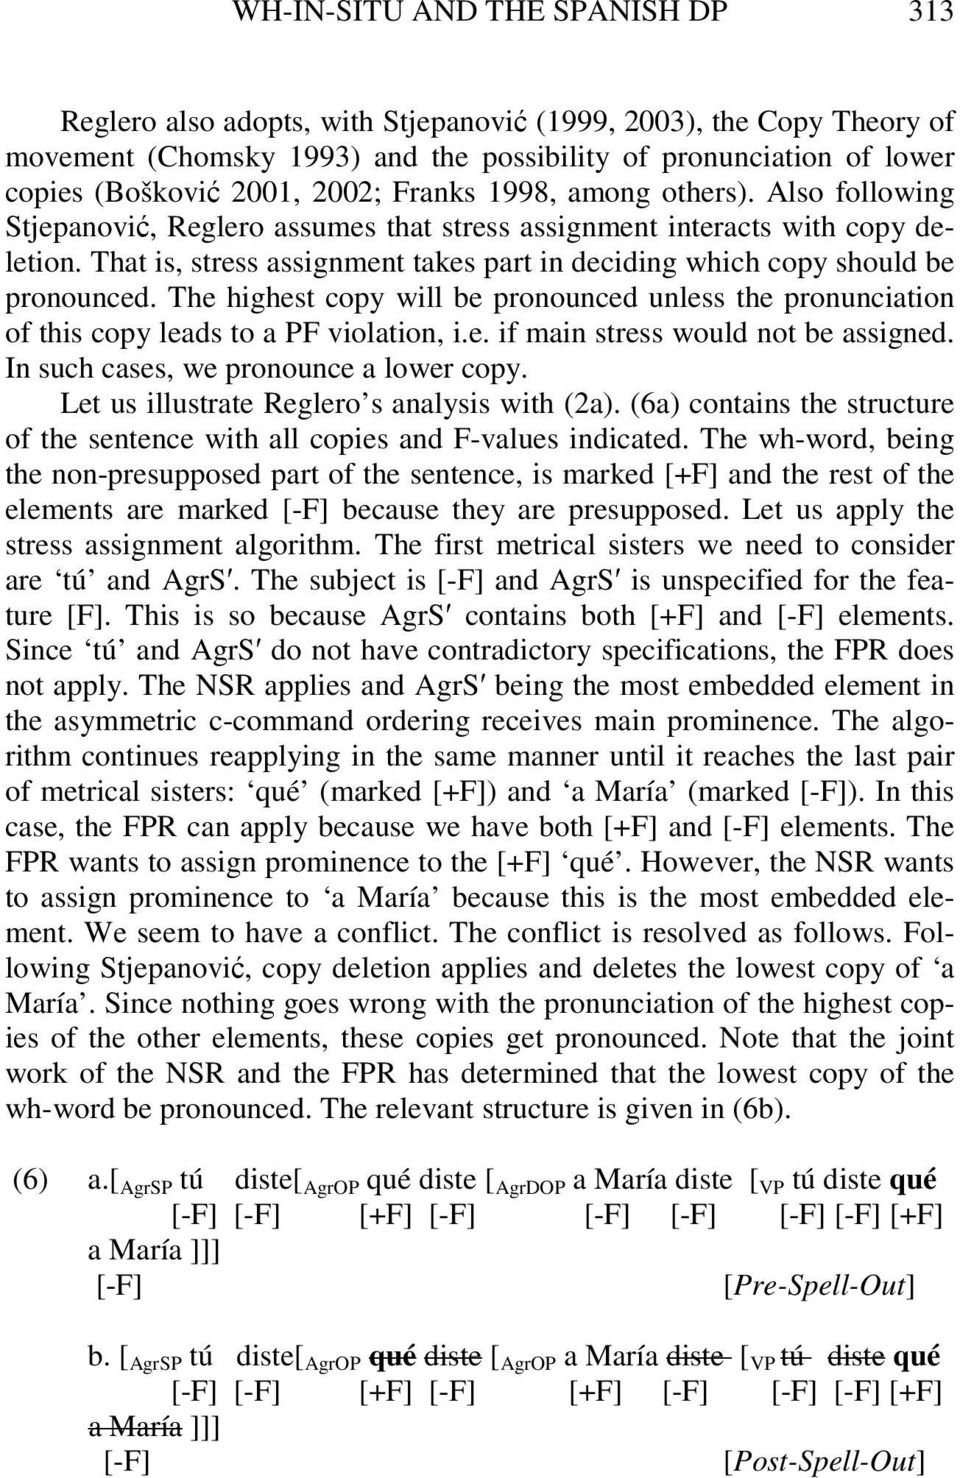 That is, stress assignment takes part in deciding which copy should be pronounced. The highest copy will be pronounced unless the pronunciation of this copy leads to a PF violation, i.e. if main stress would not be assigned.